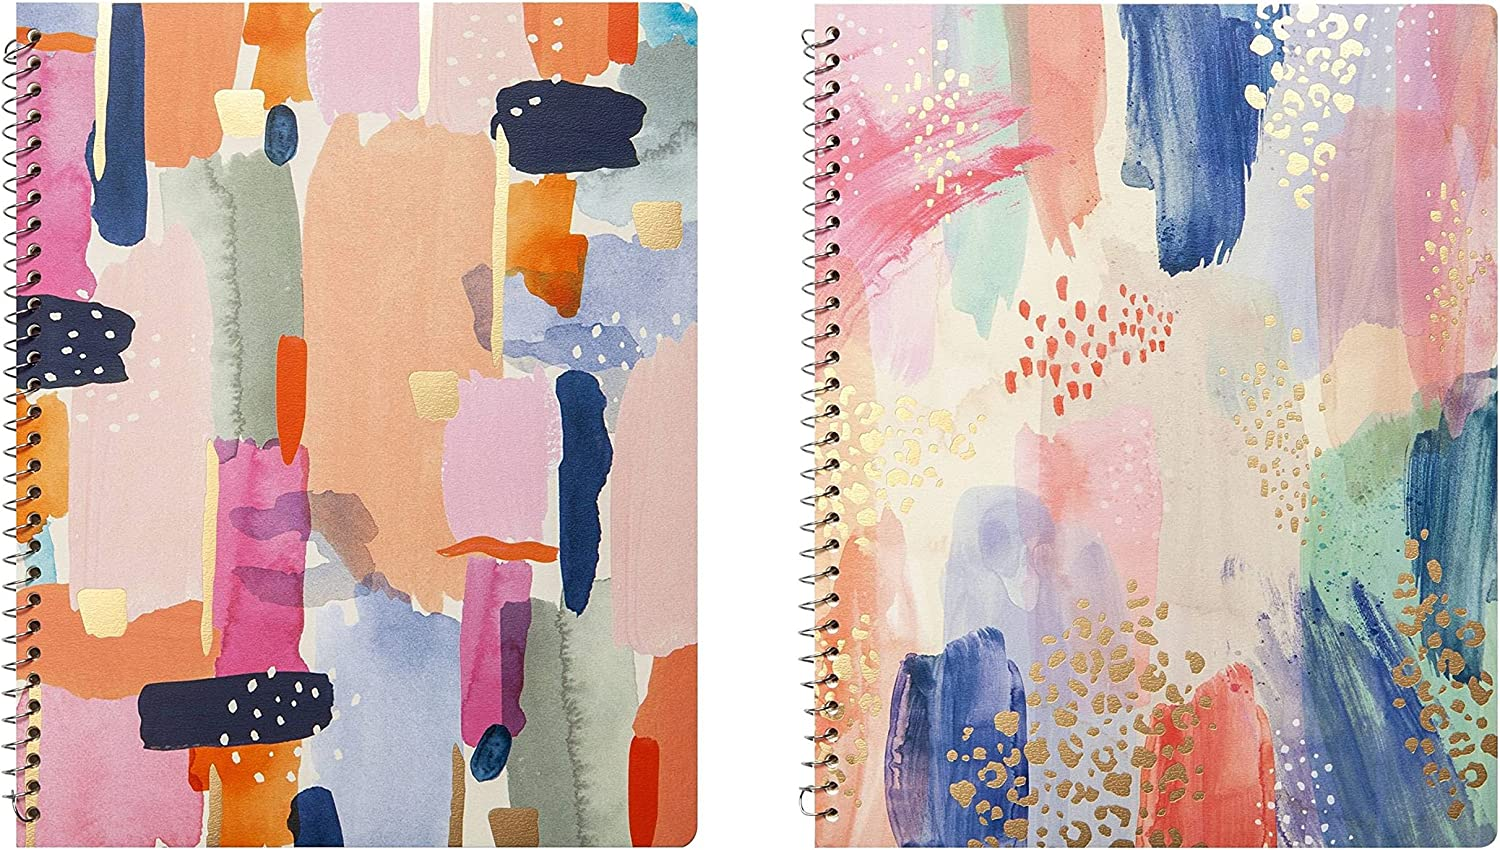 Back To School Max 40% OFF GreenRoom 2 PACKS Spiral Subject C 1 Notebooks Direct store